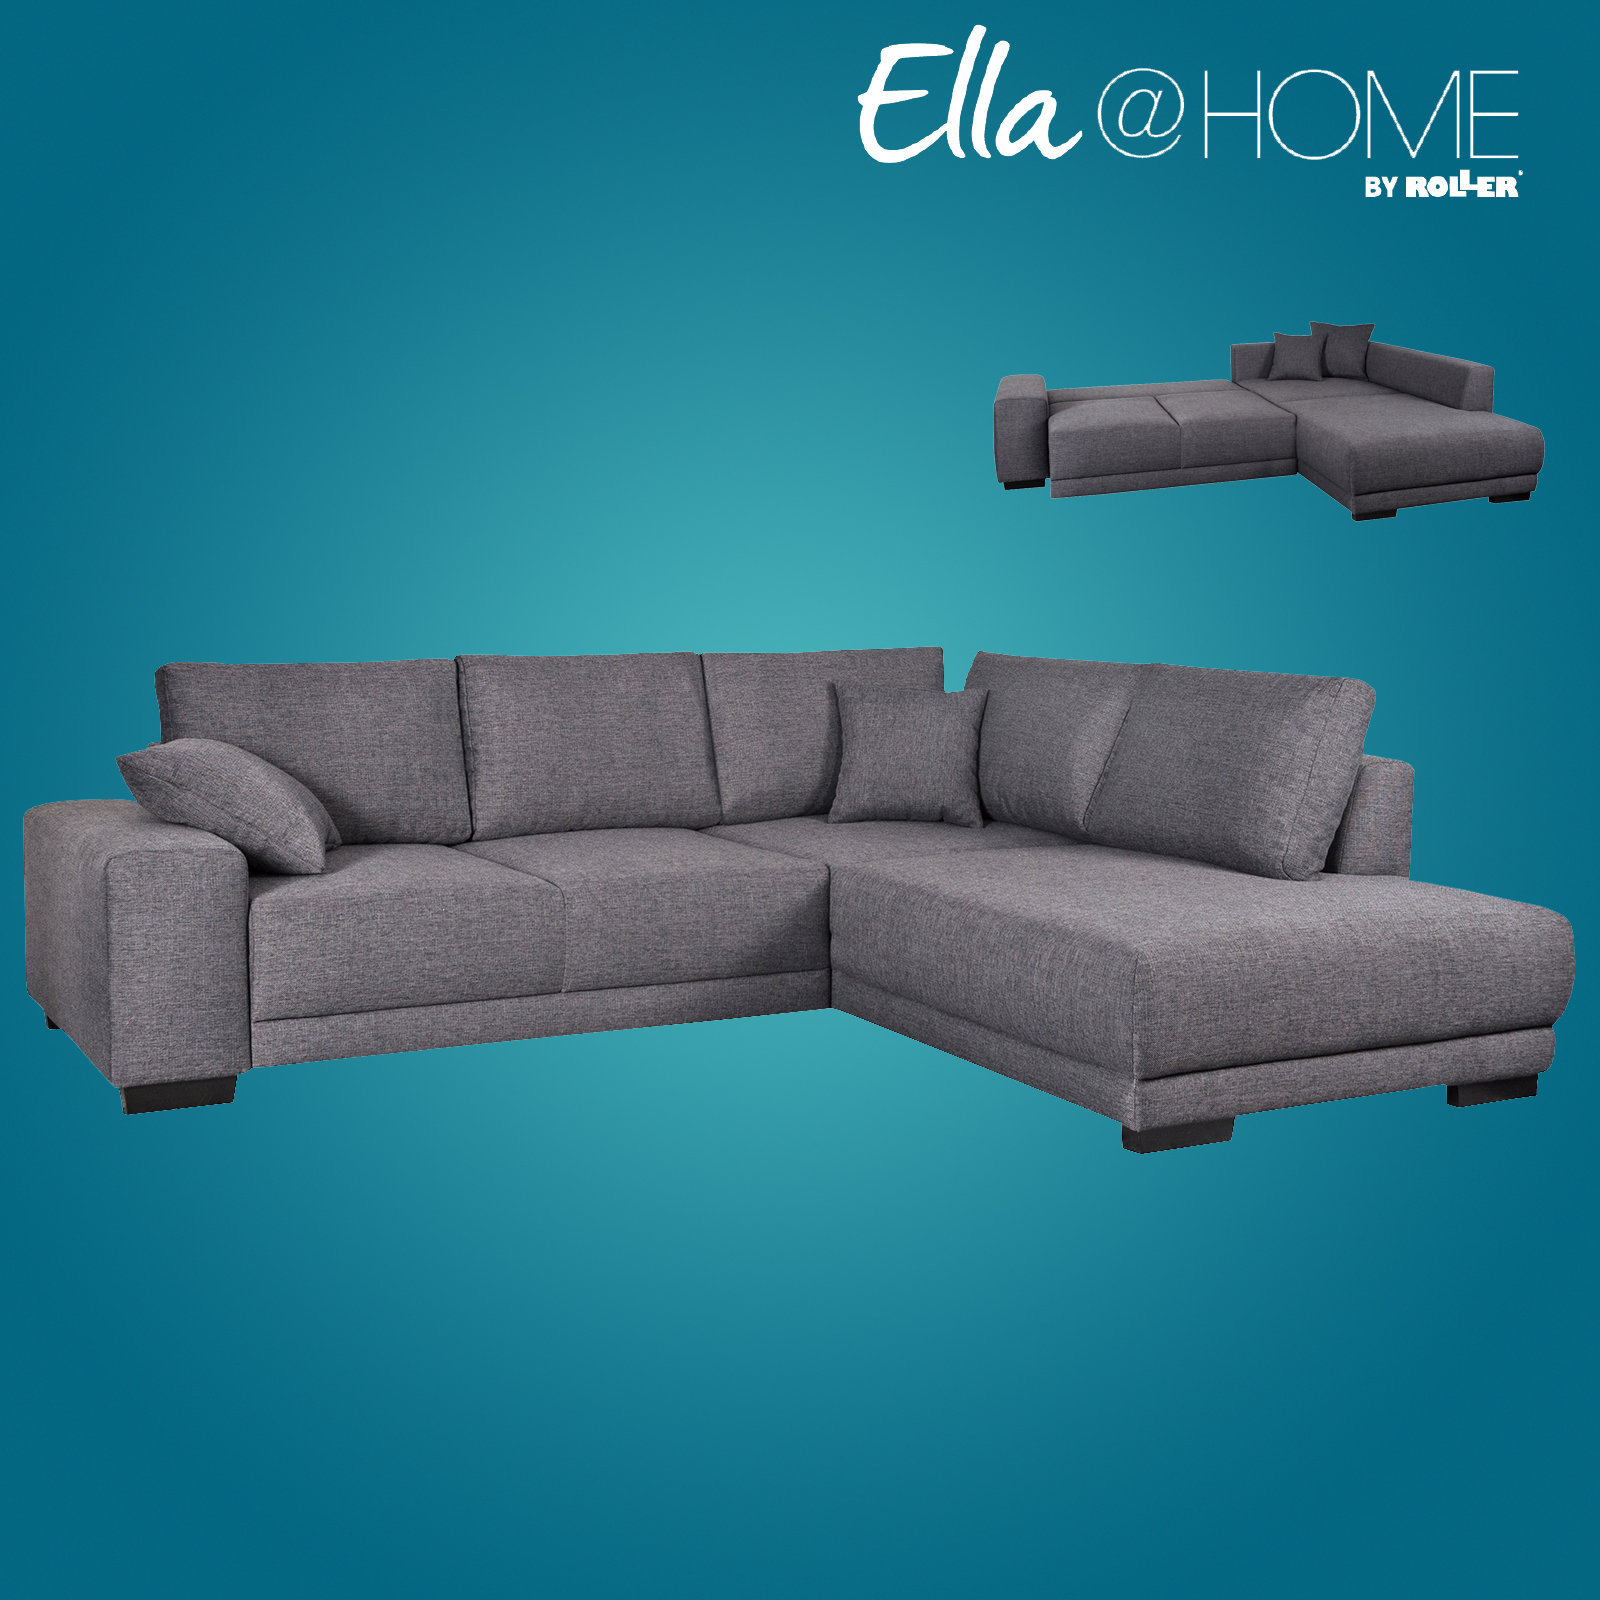 42 sparen ecksofa graz von ella home nur 399 99 cherry m bel. Black Bedroom Furniture Sets. Home Design Ideas